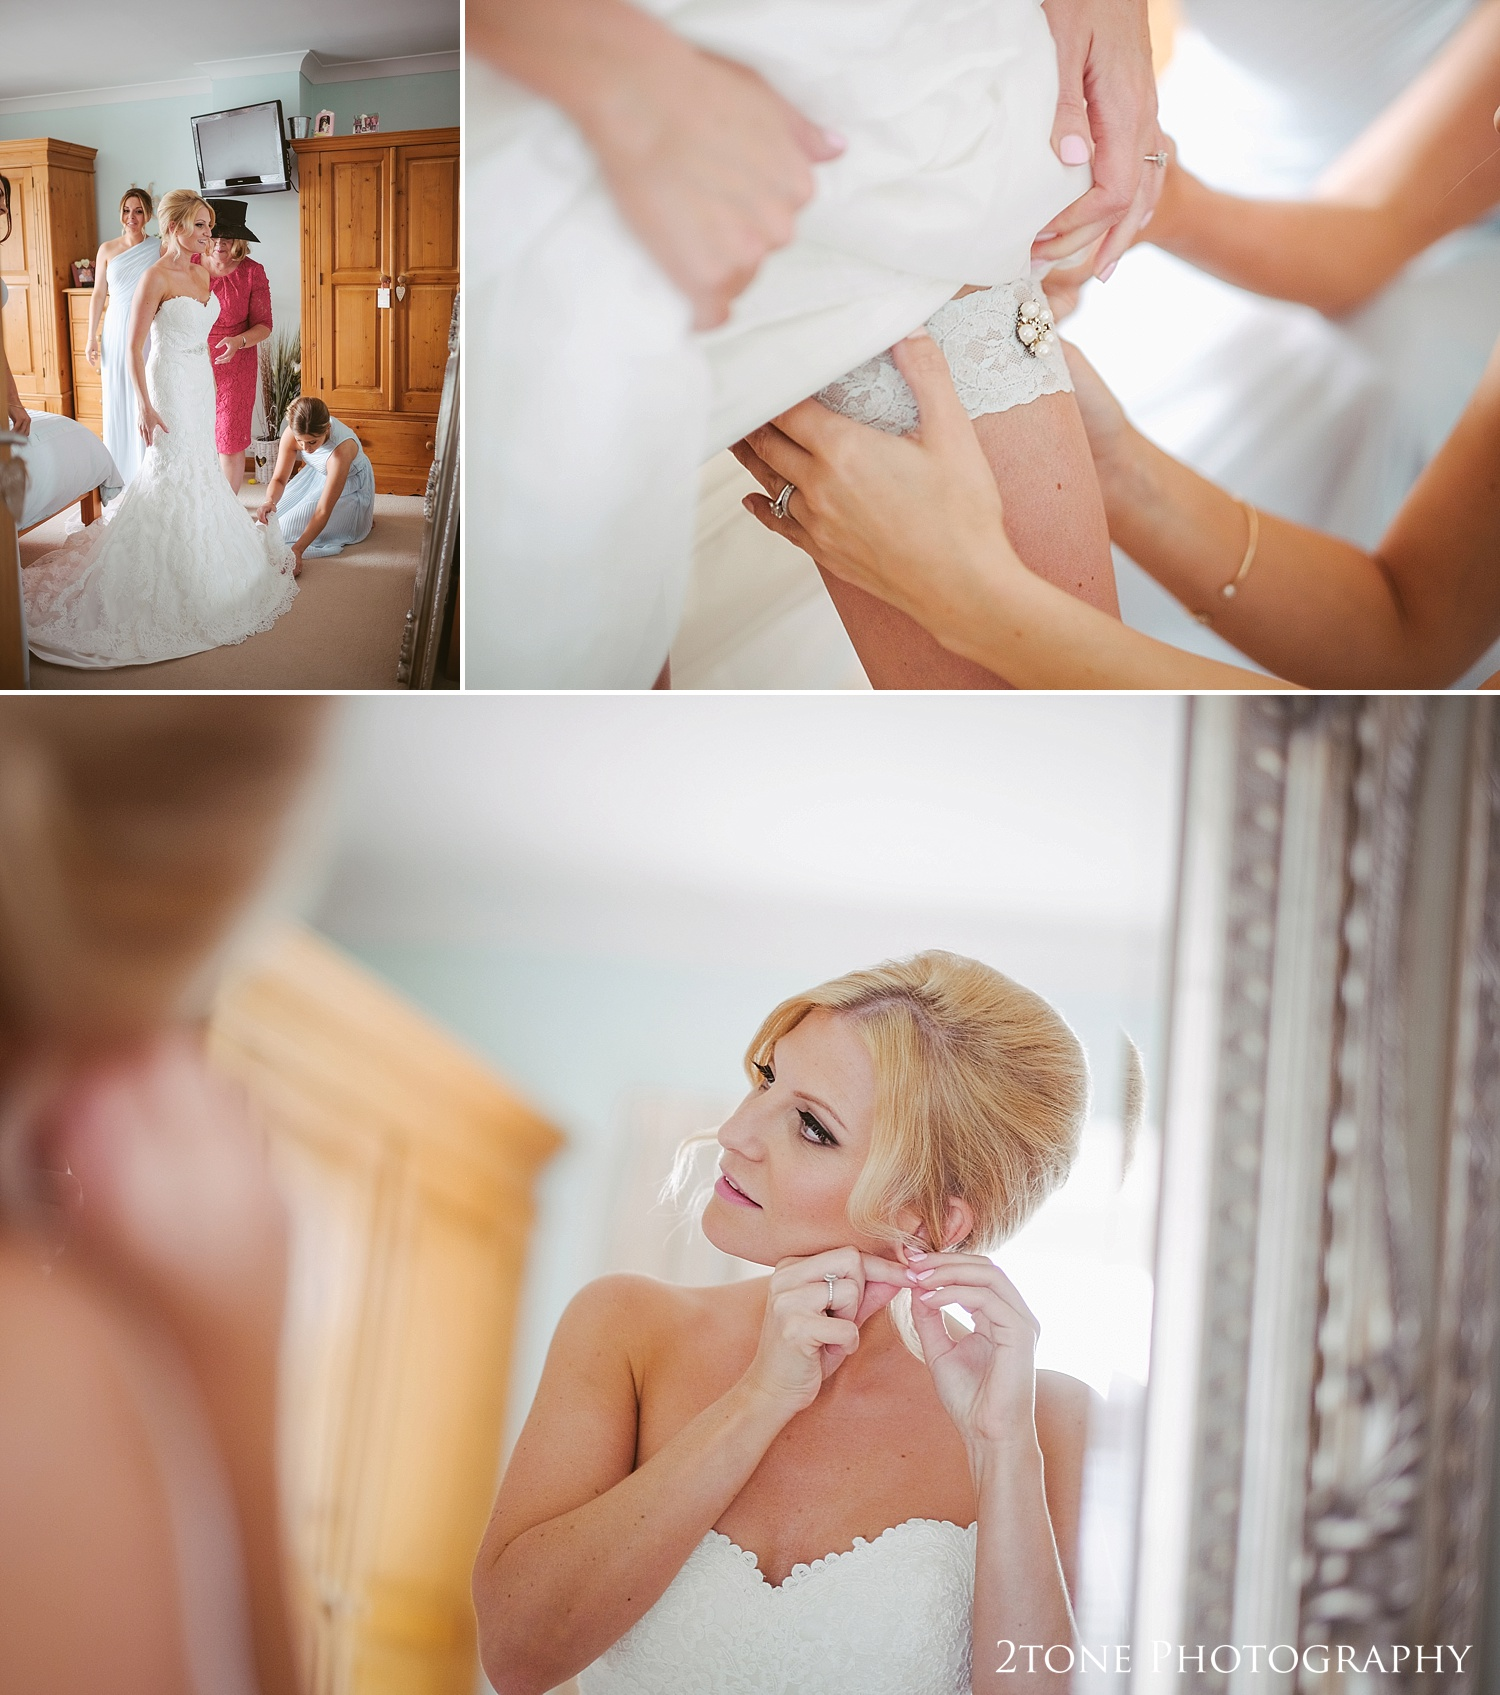 Bridal preparations by wedding photography team 2tone Photography www.2tonephotography.co.uk